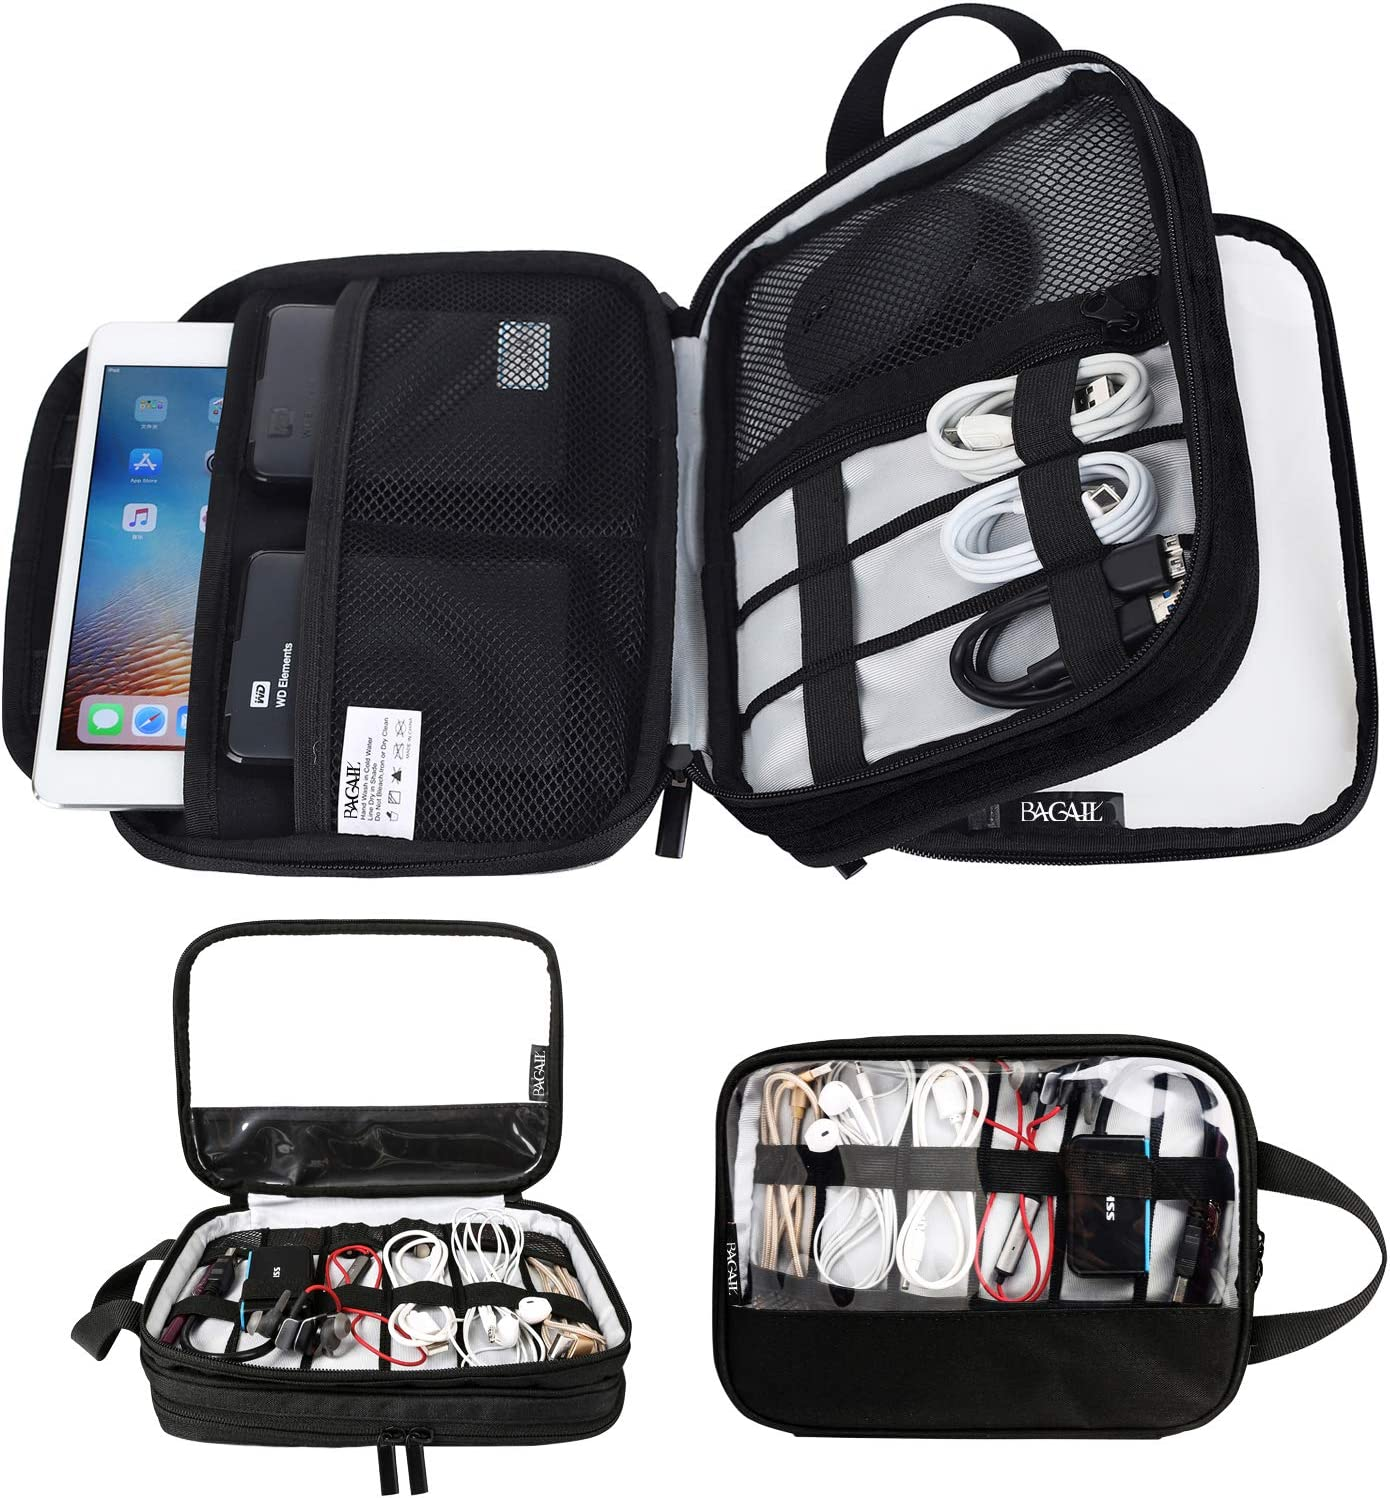 Black Power Bank,etc. Telephone USB Drive BAGAIL Electronic Organizer Travel Double Layer Portable Cable Storage Bag for Charging Cable SD Card